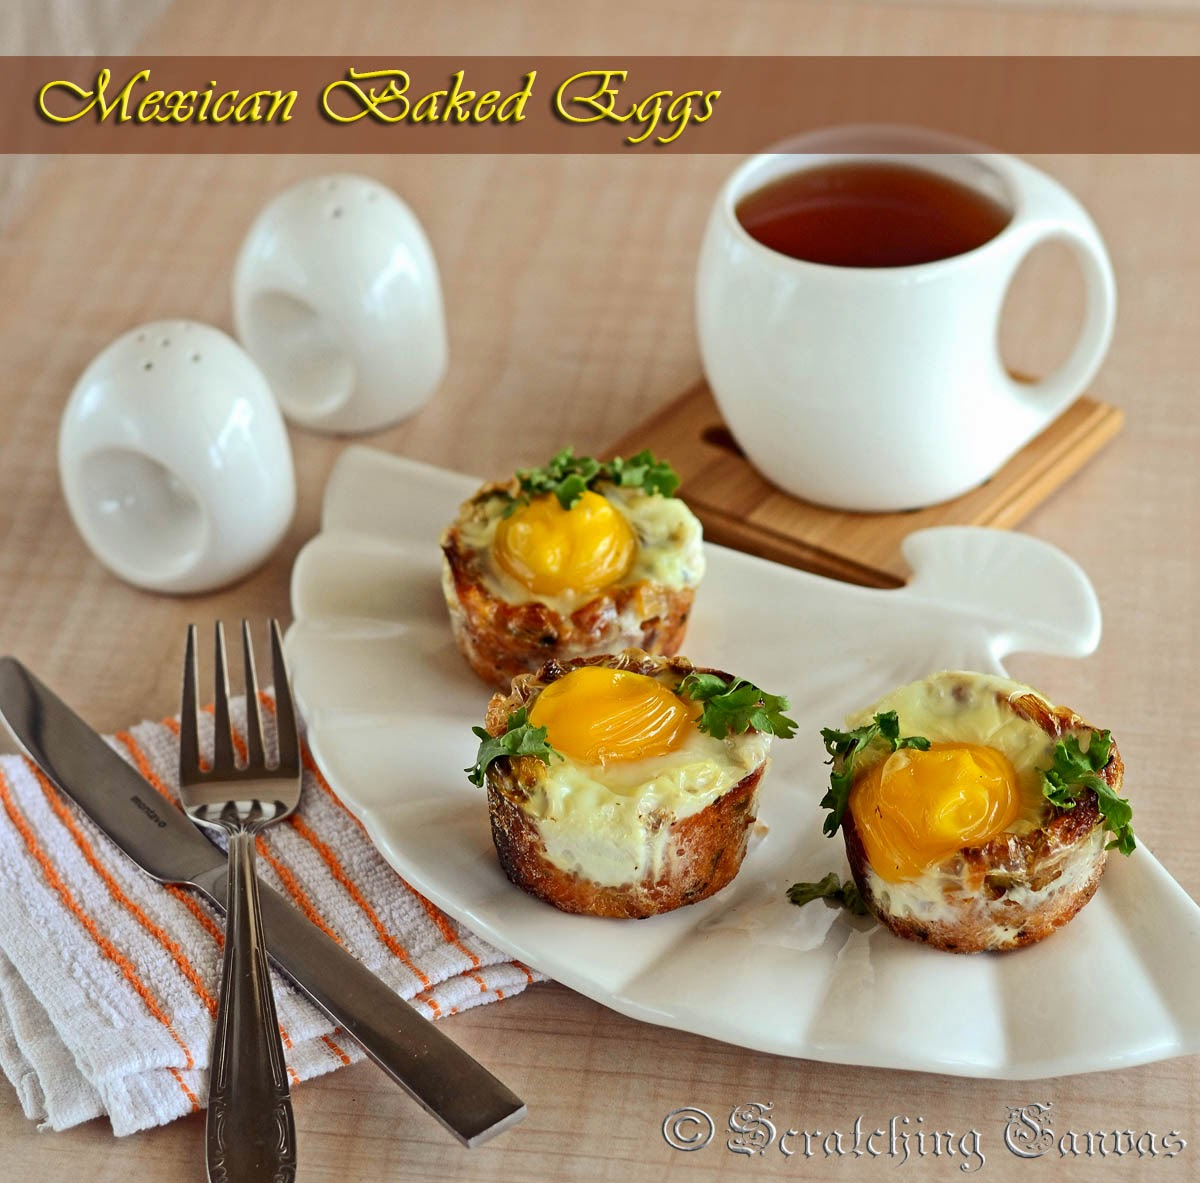 Baked Egg in Corn Cup